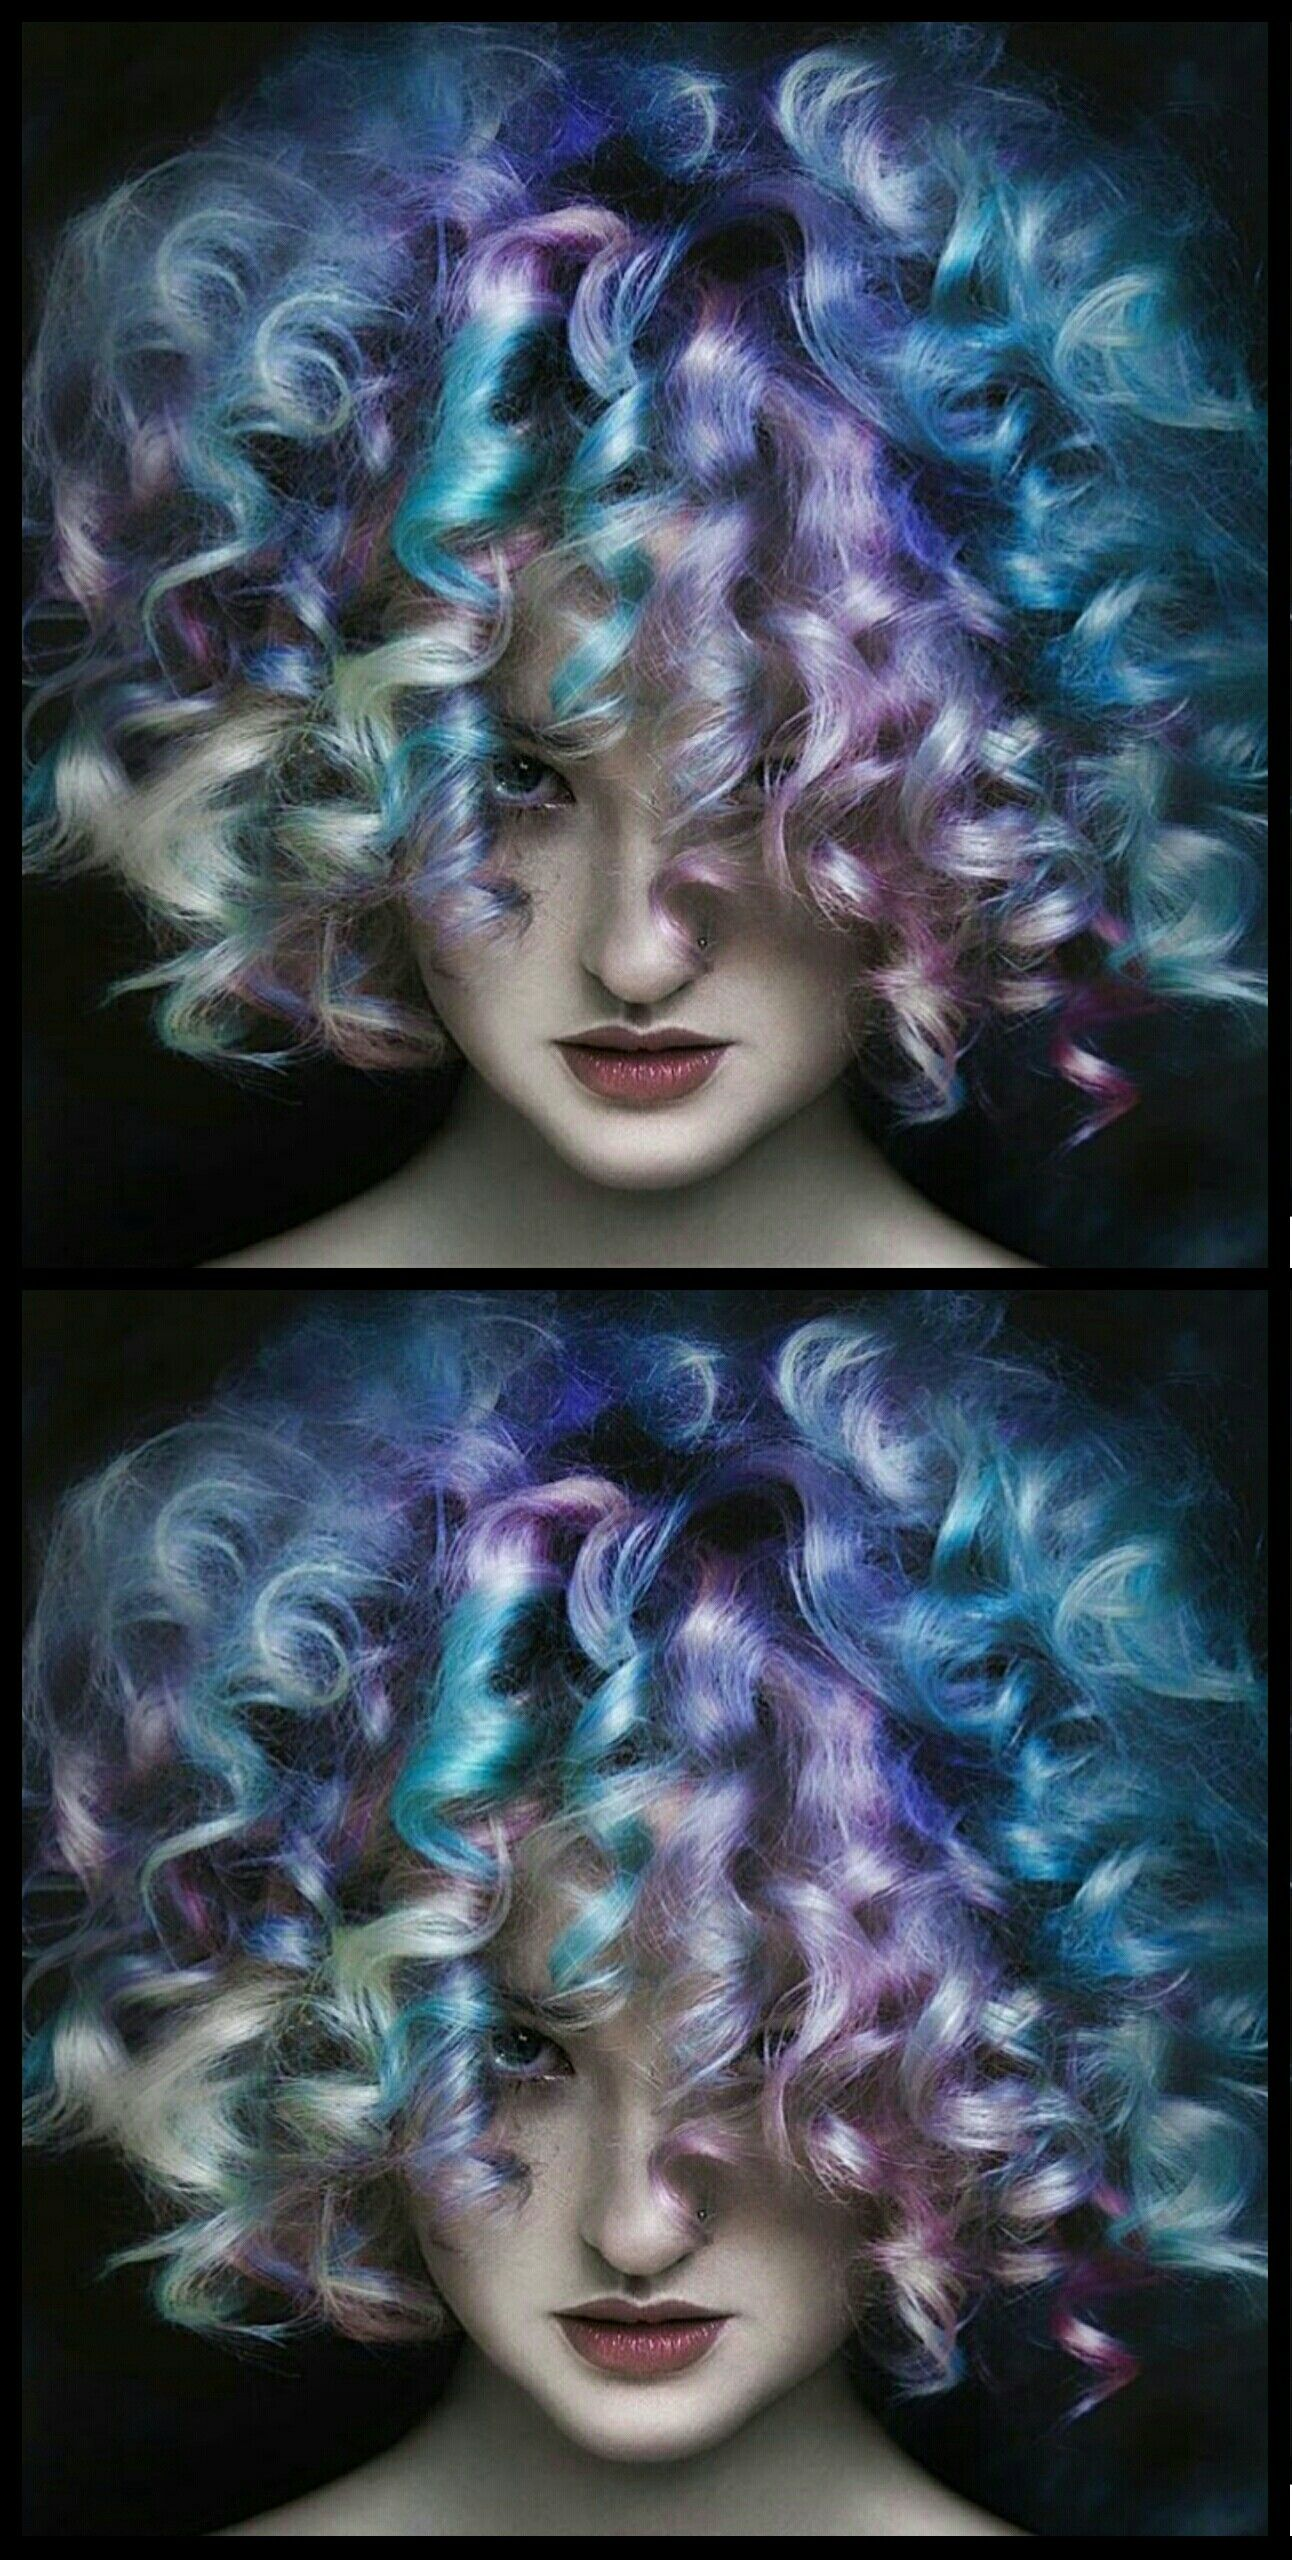 Dyed curly multi hair @bottleblonde76 Beauty: Fantasy Unicorn Purple Violet Red Cherry Pink yellow Bright Hair Colour Color Coloured Colored Fire Style curls haircut lilac lavender short long mermaid blue green teal orange hippy boho ombré woman lady pretty selfie style fade makeup grey white silver trend trending Pulp Riot